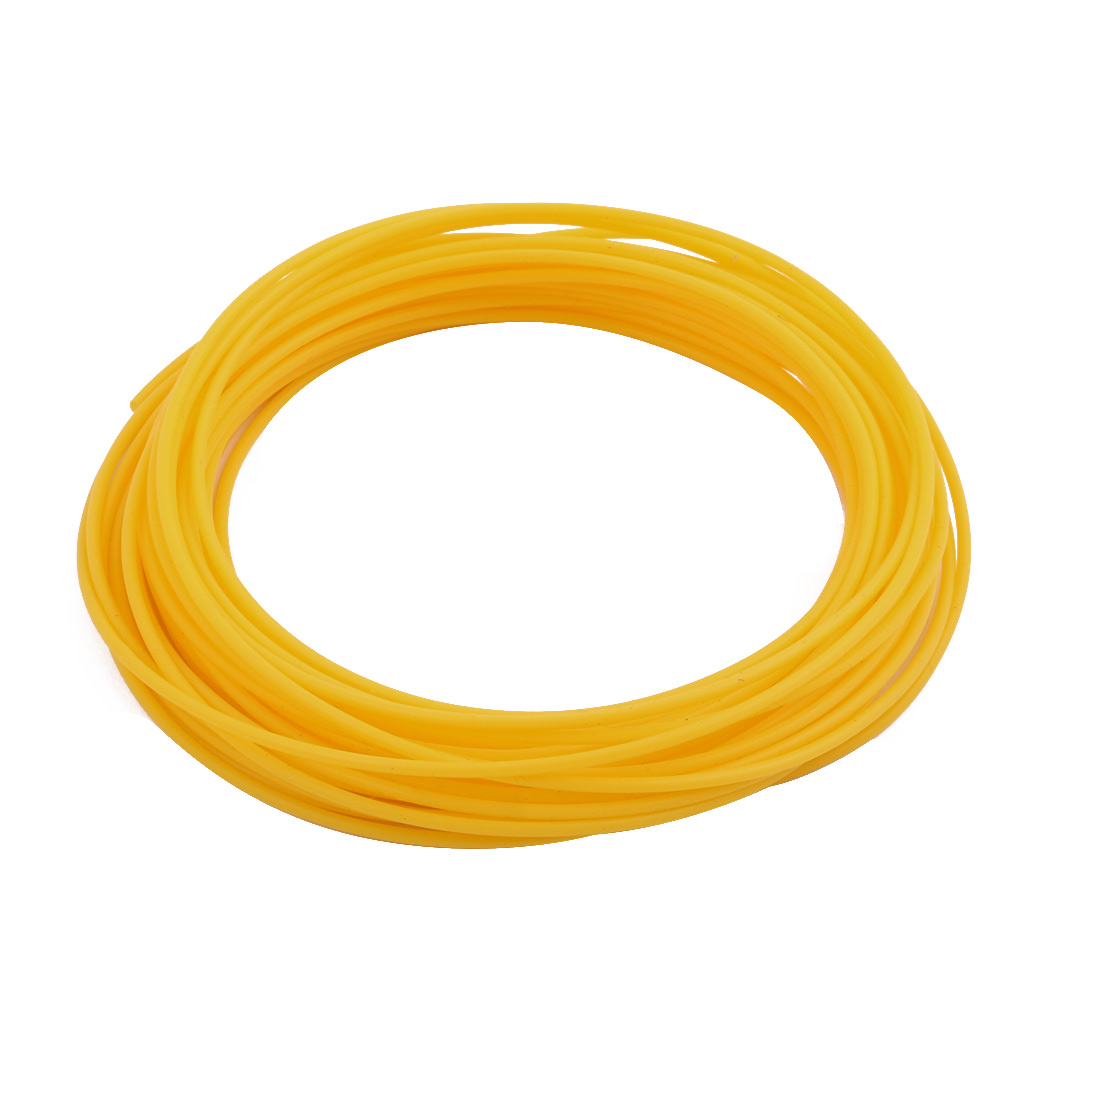 1.68mmx2.08mm PTFE Resistant High Temperature Yellow Tubing 10 Meters 32.8Ft